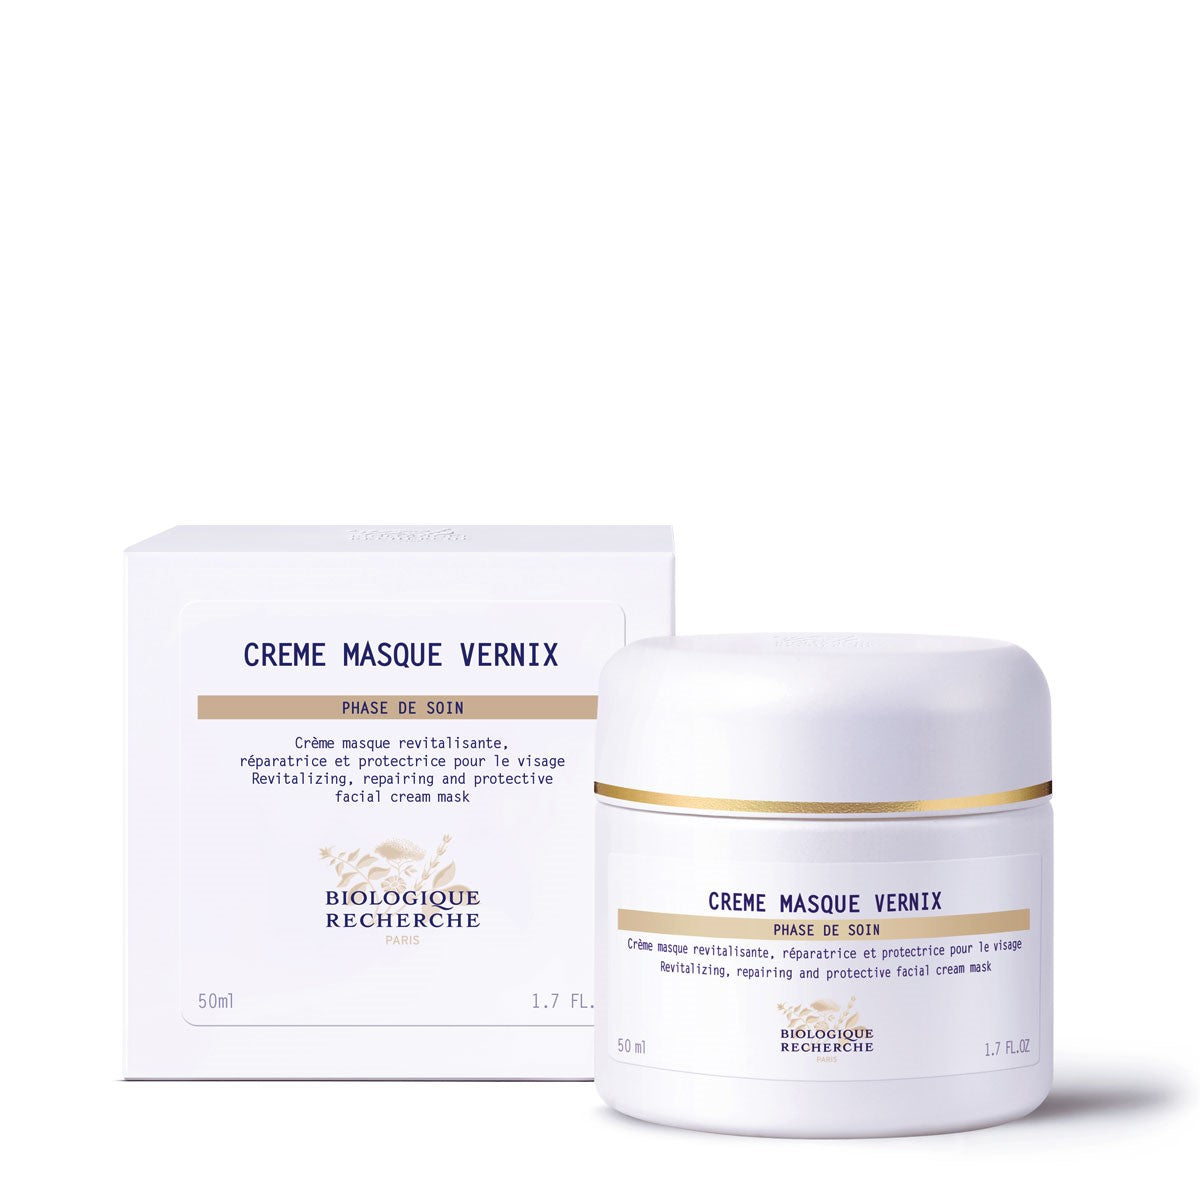 Creme Masque Vernix -- Repairing Facial Cream Mask ** 1.7oz/50ml